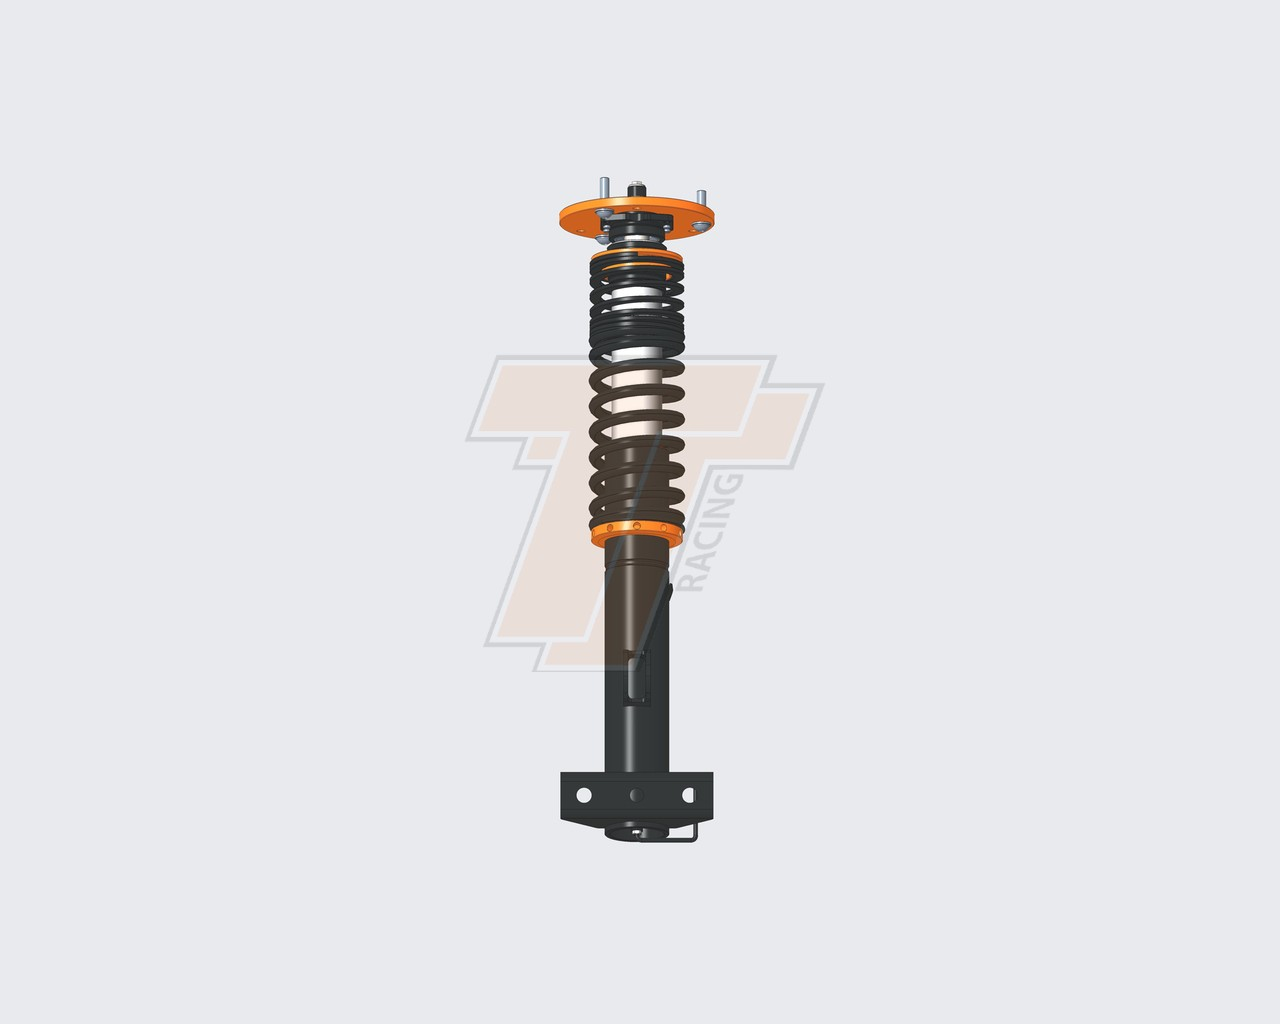 Stand Alone Electronically Adjustable Shocks